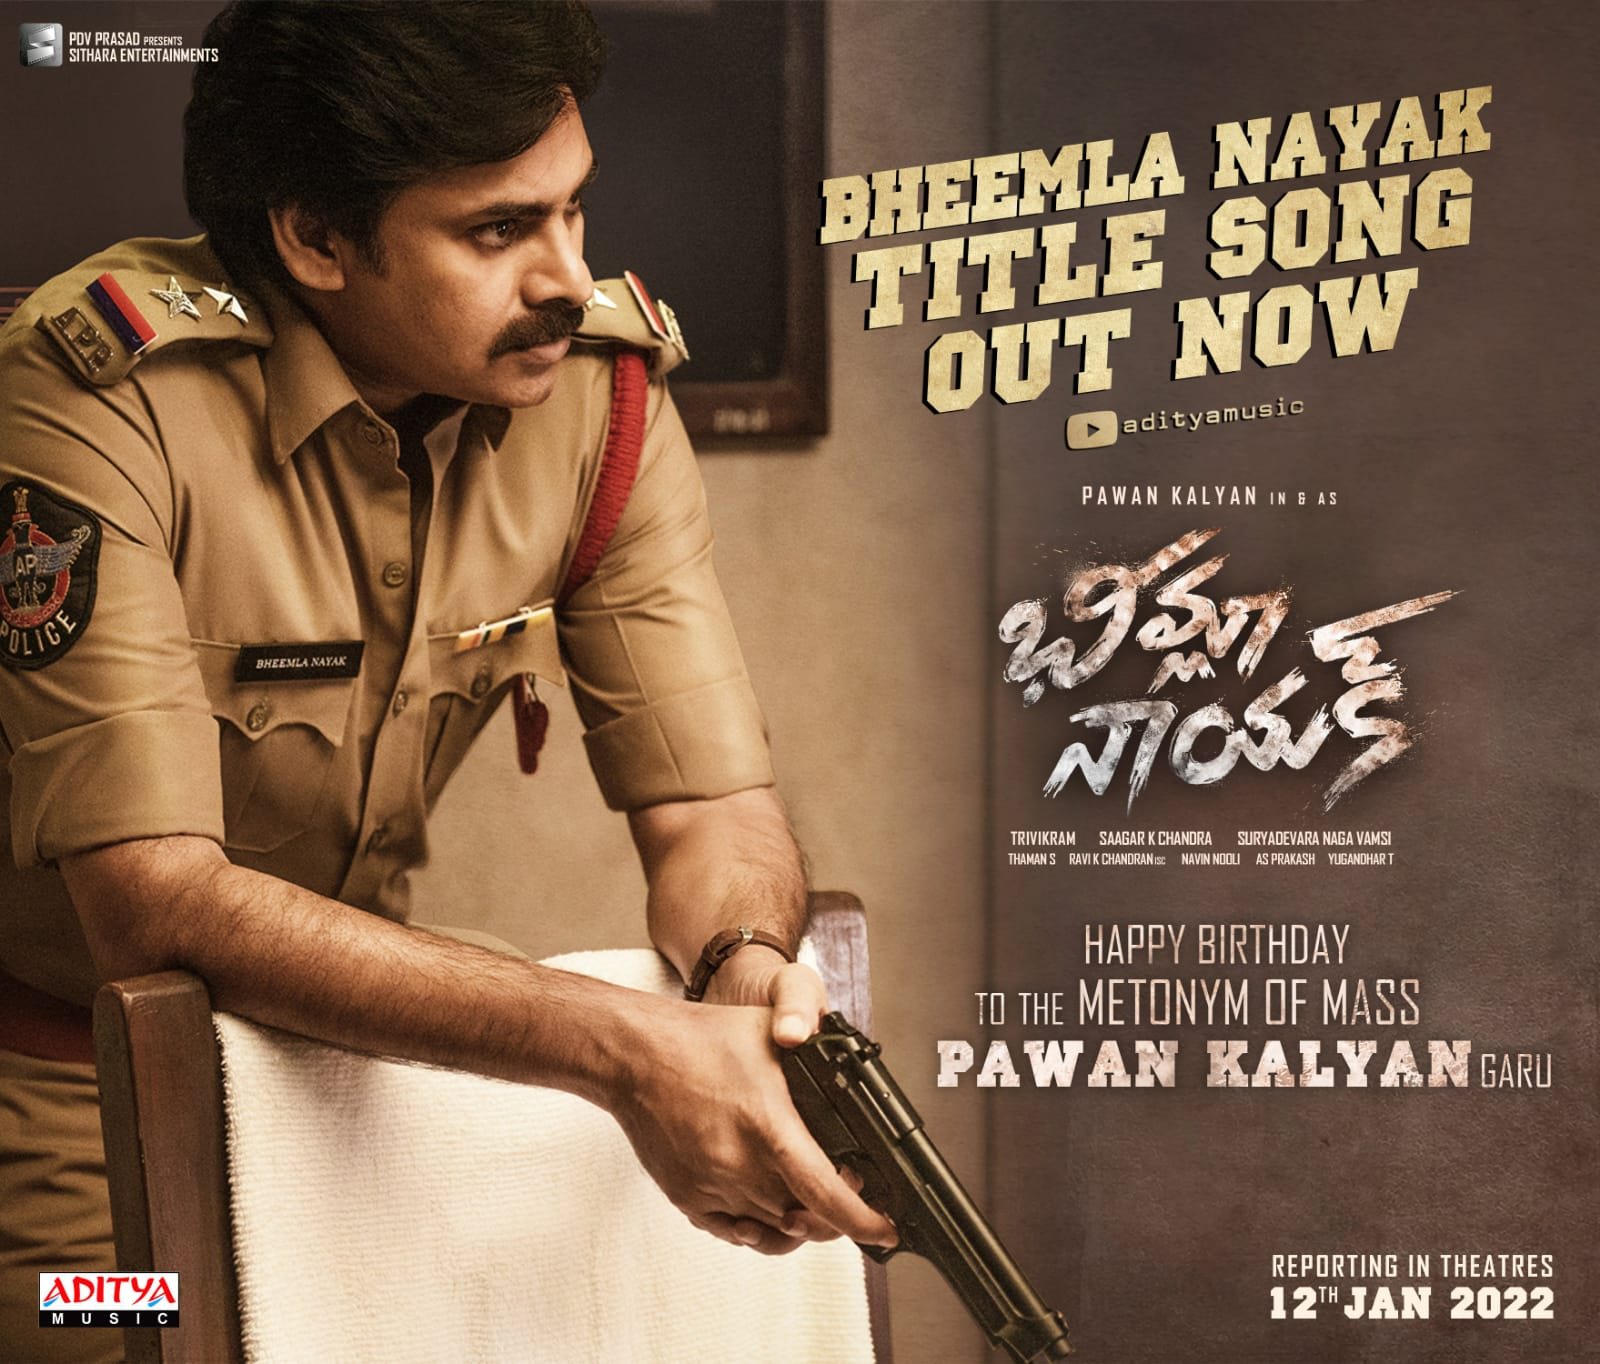 Pawan Kalyan's Bheema Nayak Title Song Is buzzing with more than 25 million views in a week